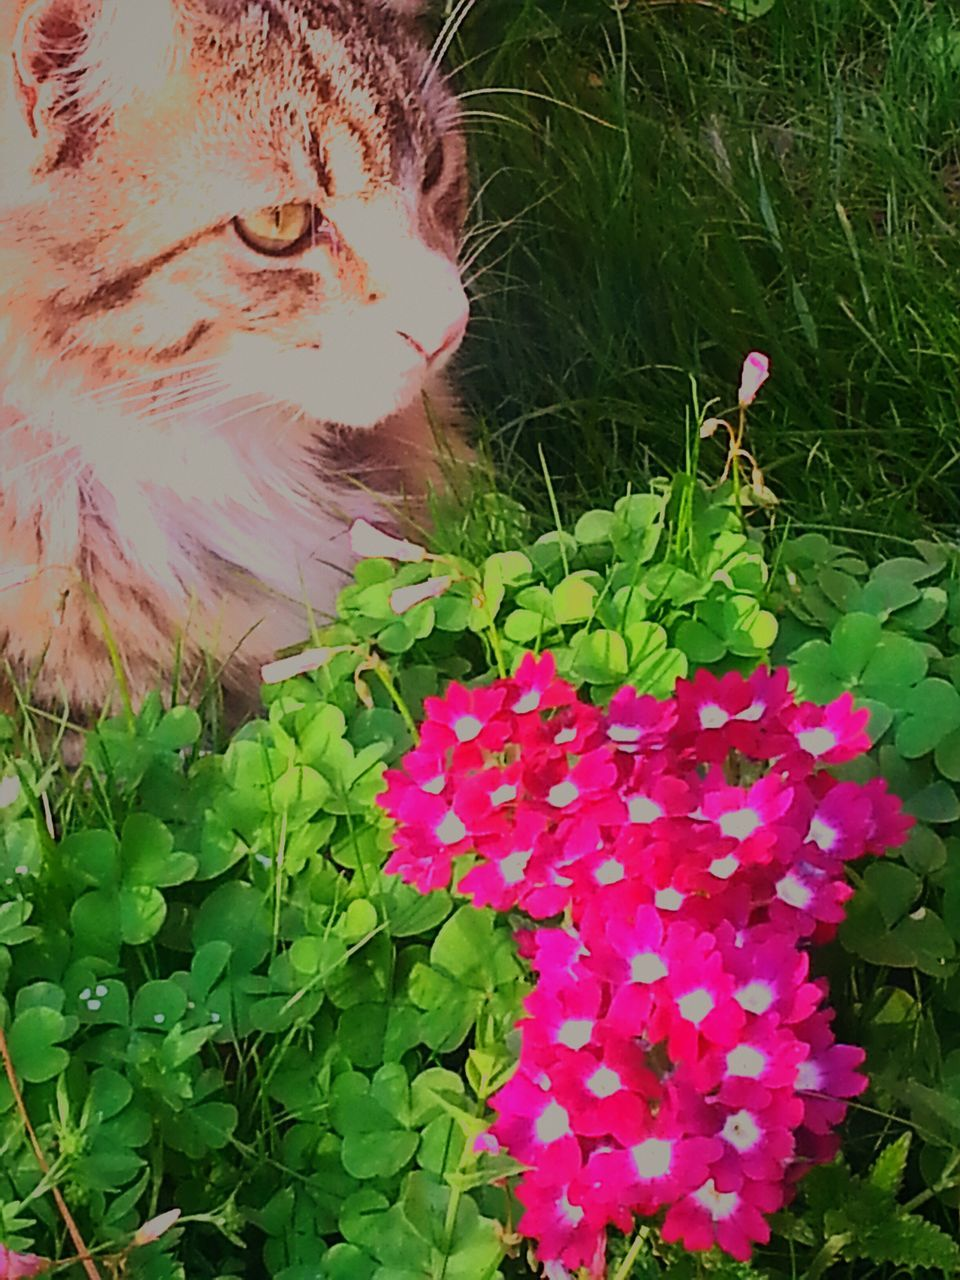 flower, leaf, plant, domestic cat, one animal, pink color, petal, nature, growth, fragility, green color, animal themes, beauty in nature, outdoors, no people, flower head, mammal, pets, day, freshness, domestic animals, close-up, feline, blooming